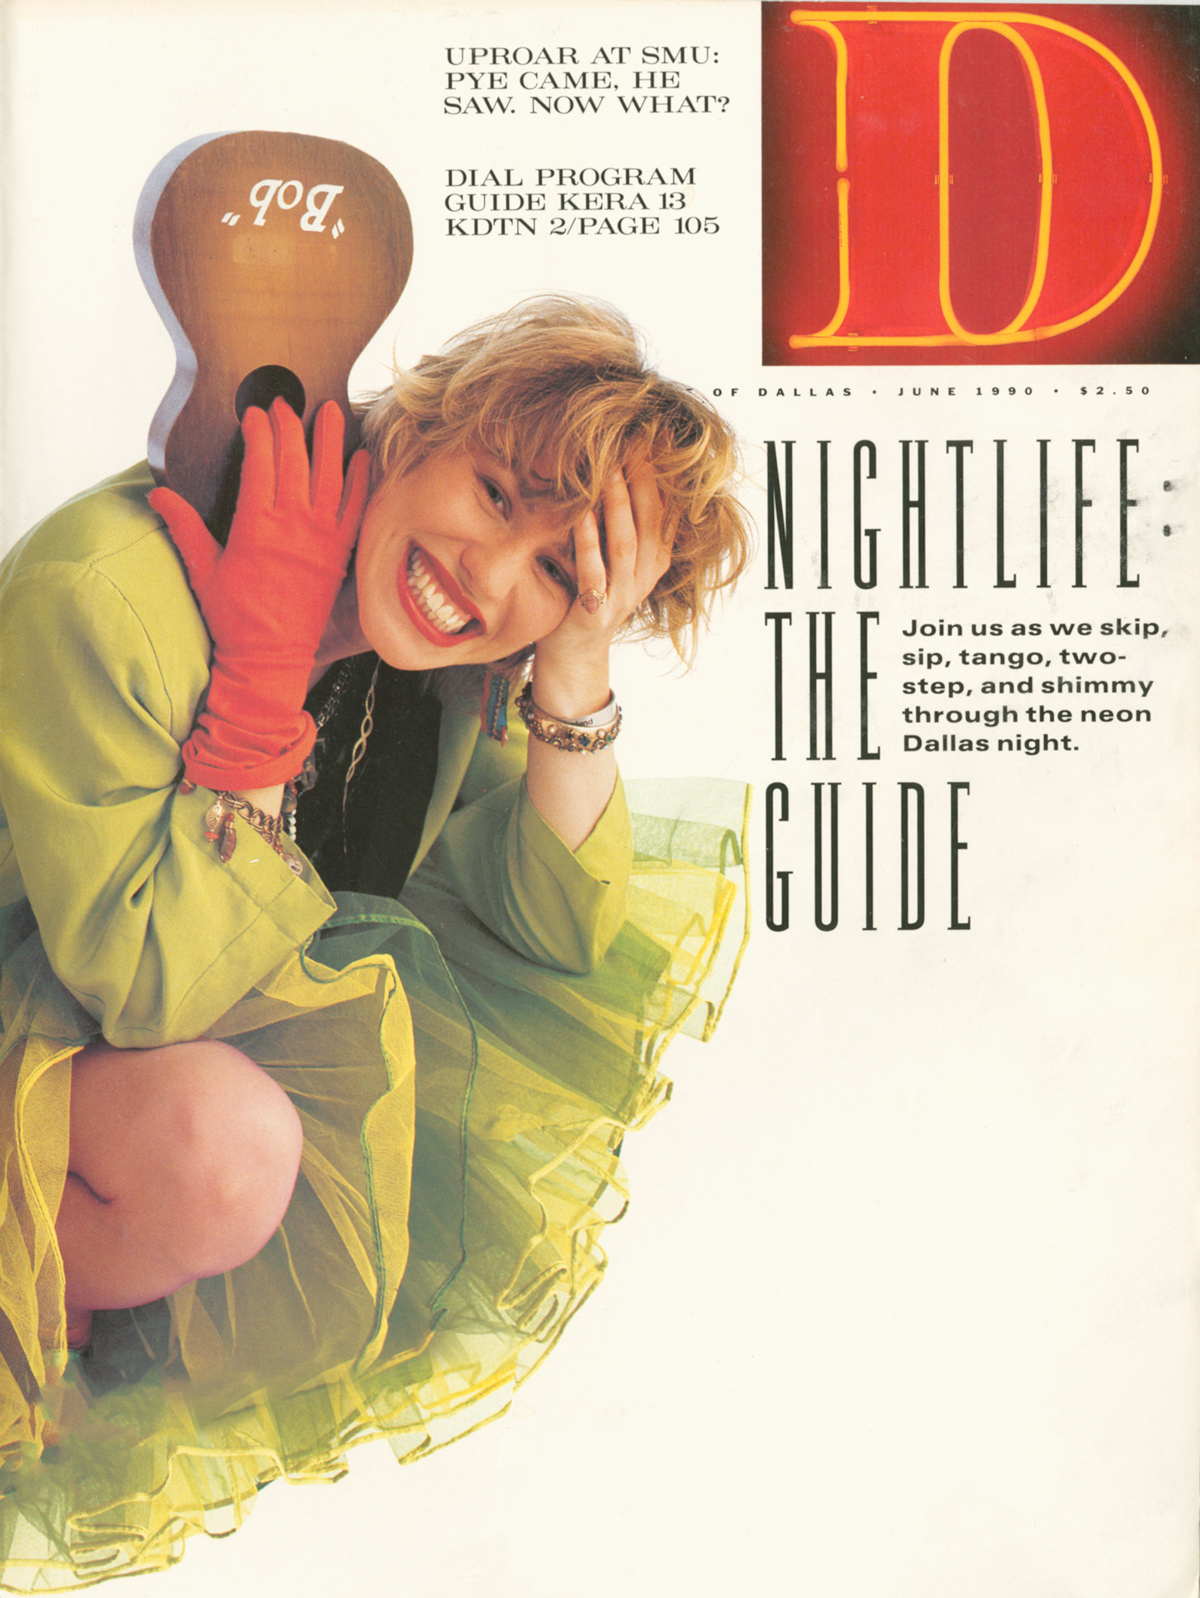 June 1990 cover